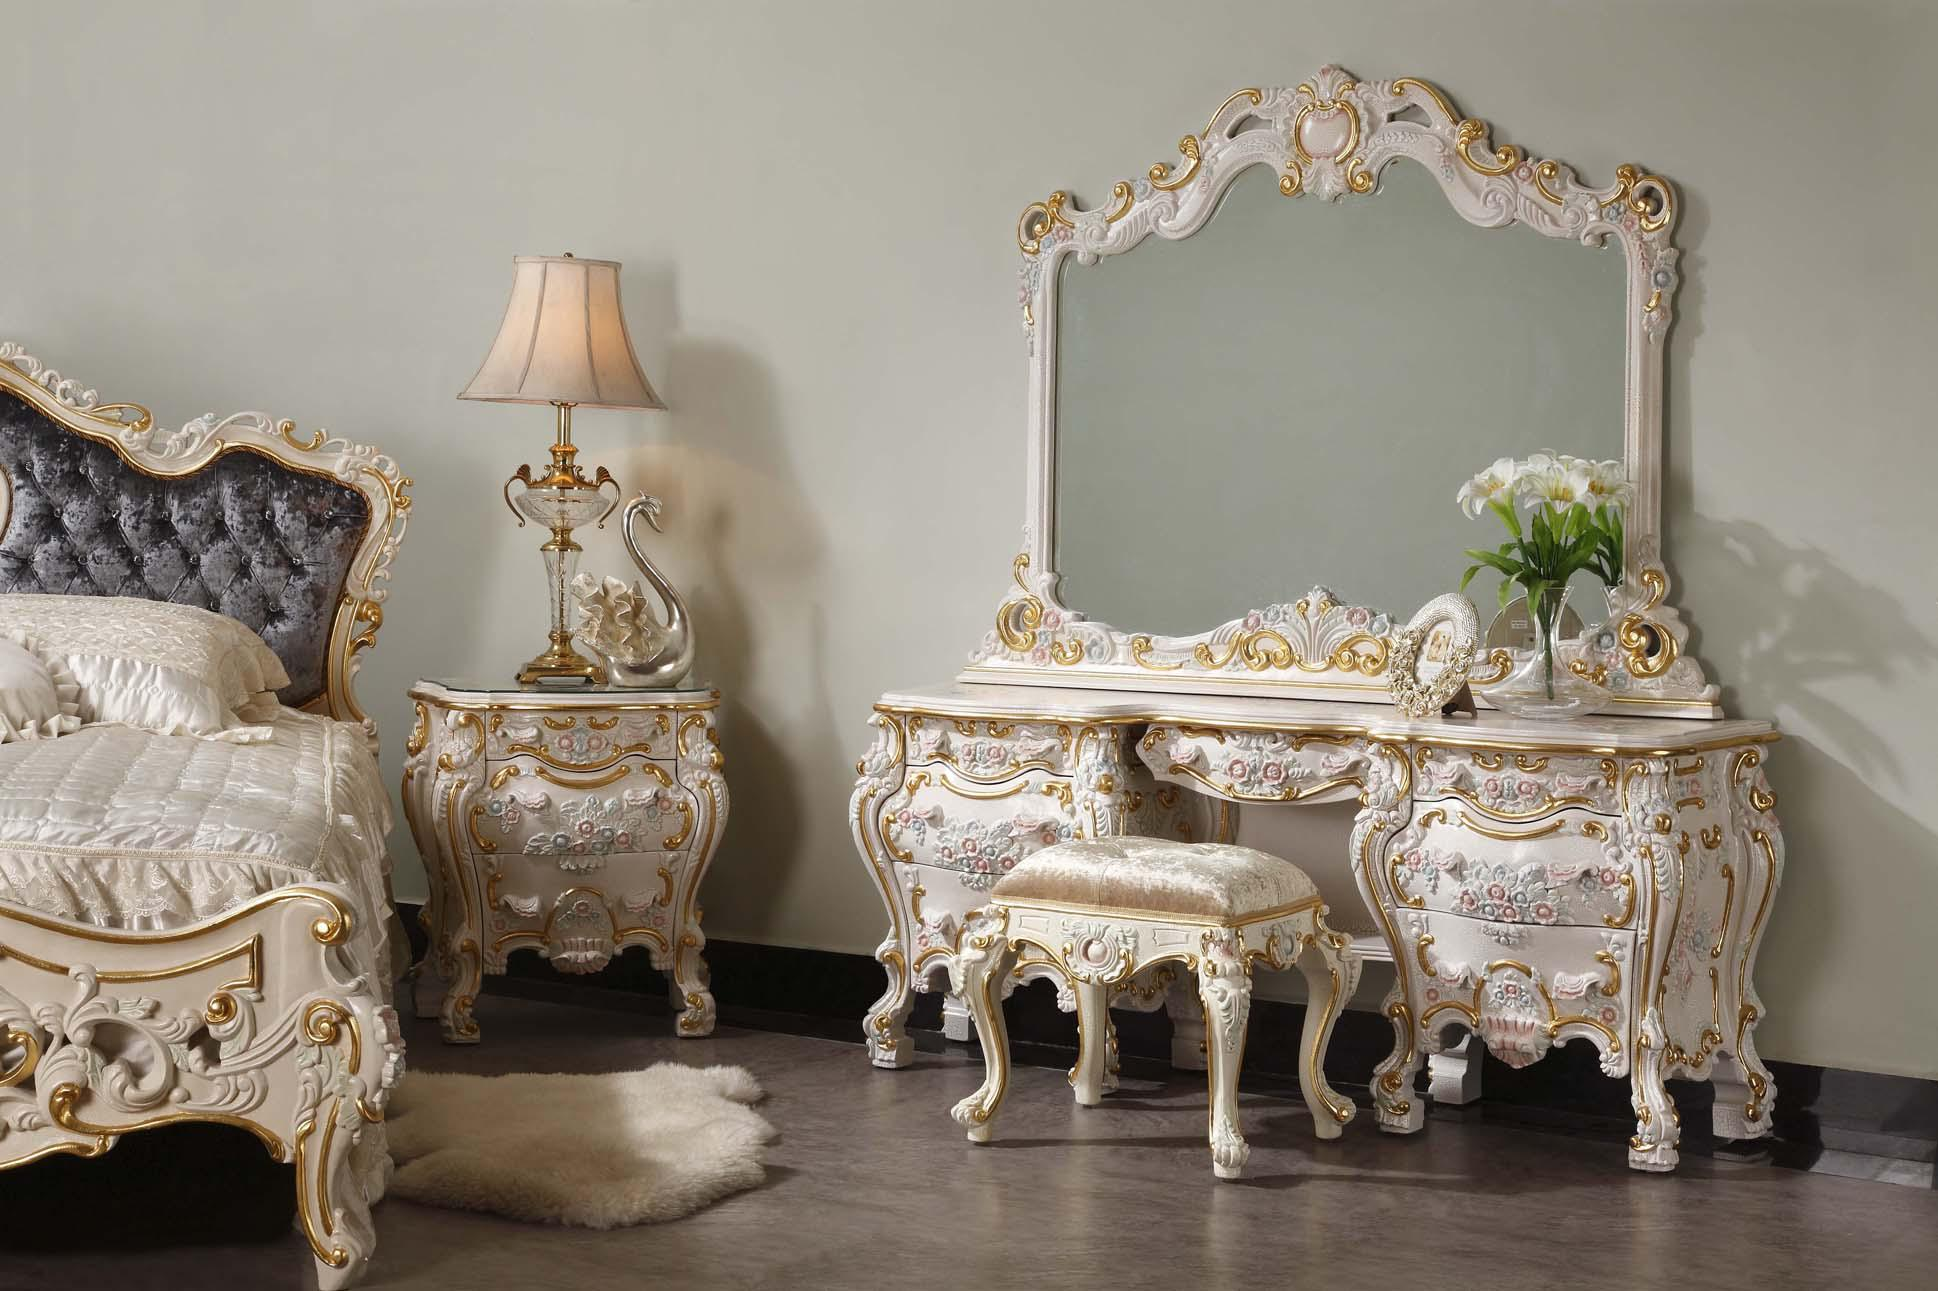 2017 Gorgeous Palace Furniture French Chateau Furniture Home Furniture From  Fpfurniturecn   2551 96   Dhgate Com. 2017 Gorgeous Palace Furniture French Chateau Furniture Home